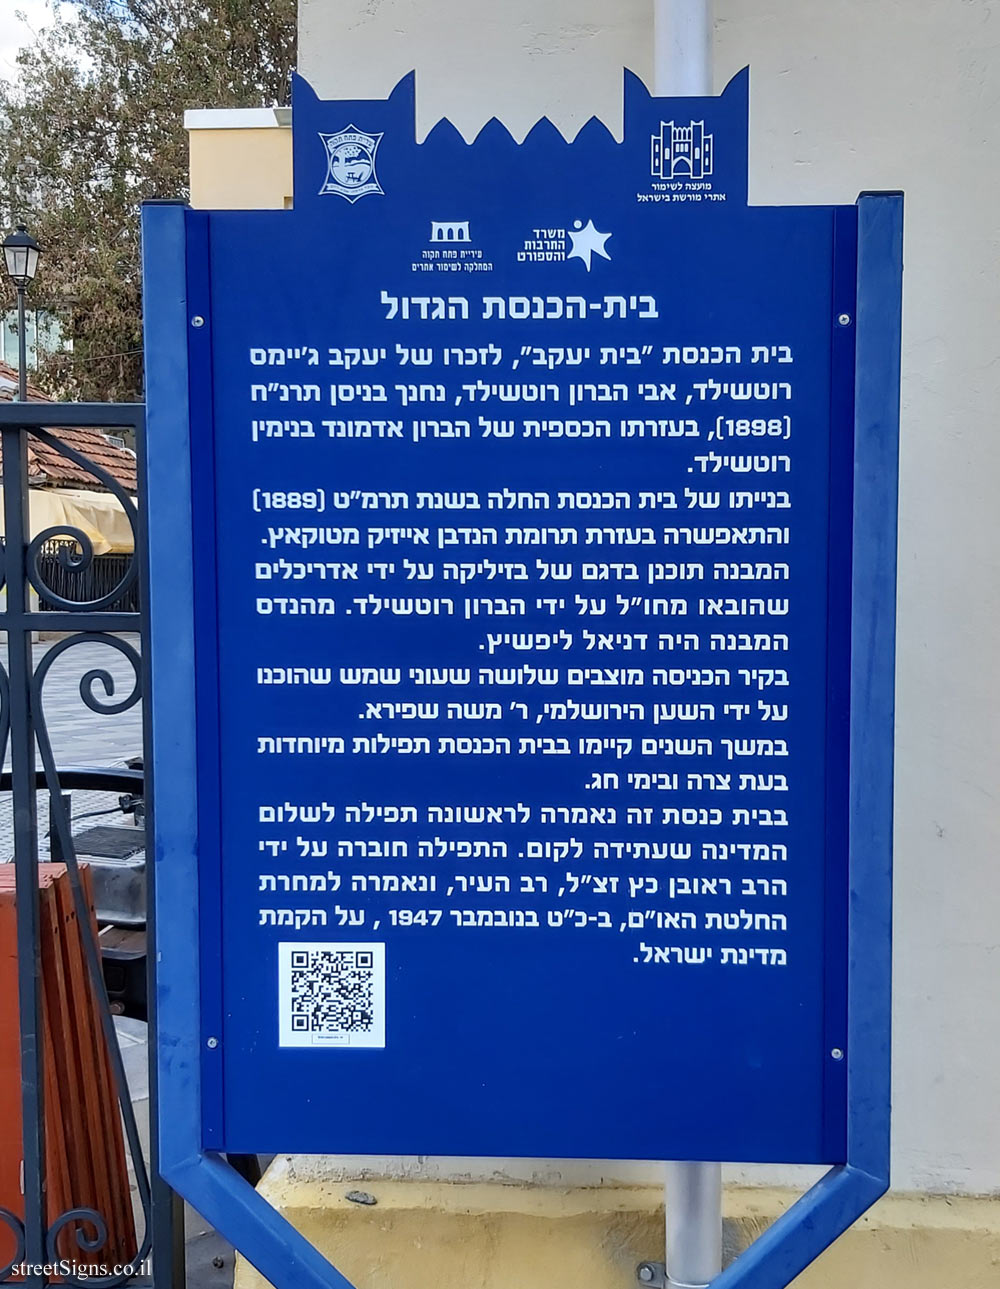 Petah Tikva - Heritage Sites in Israel - The Great Synagogue